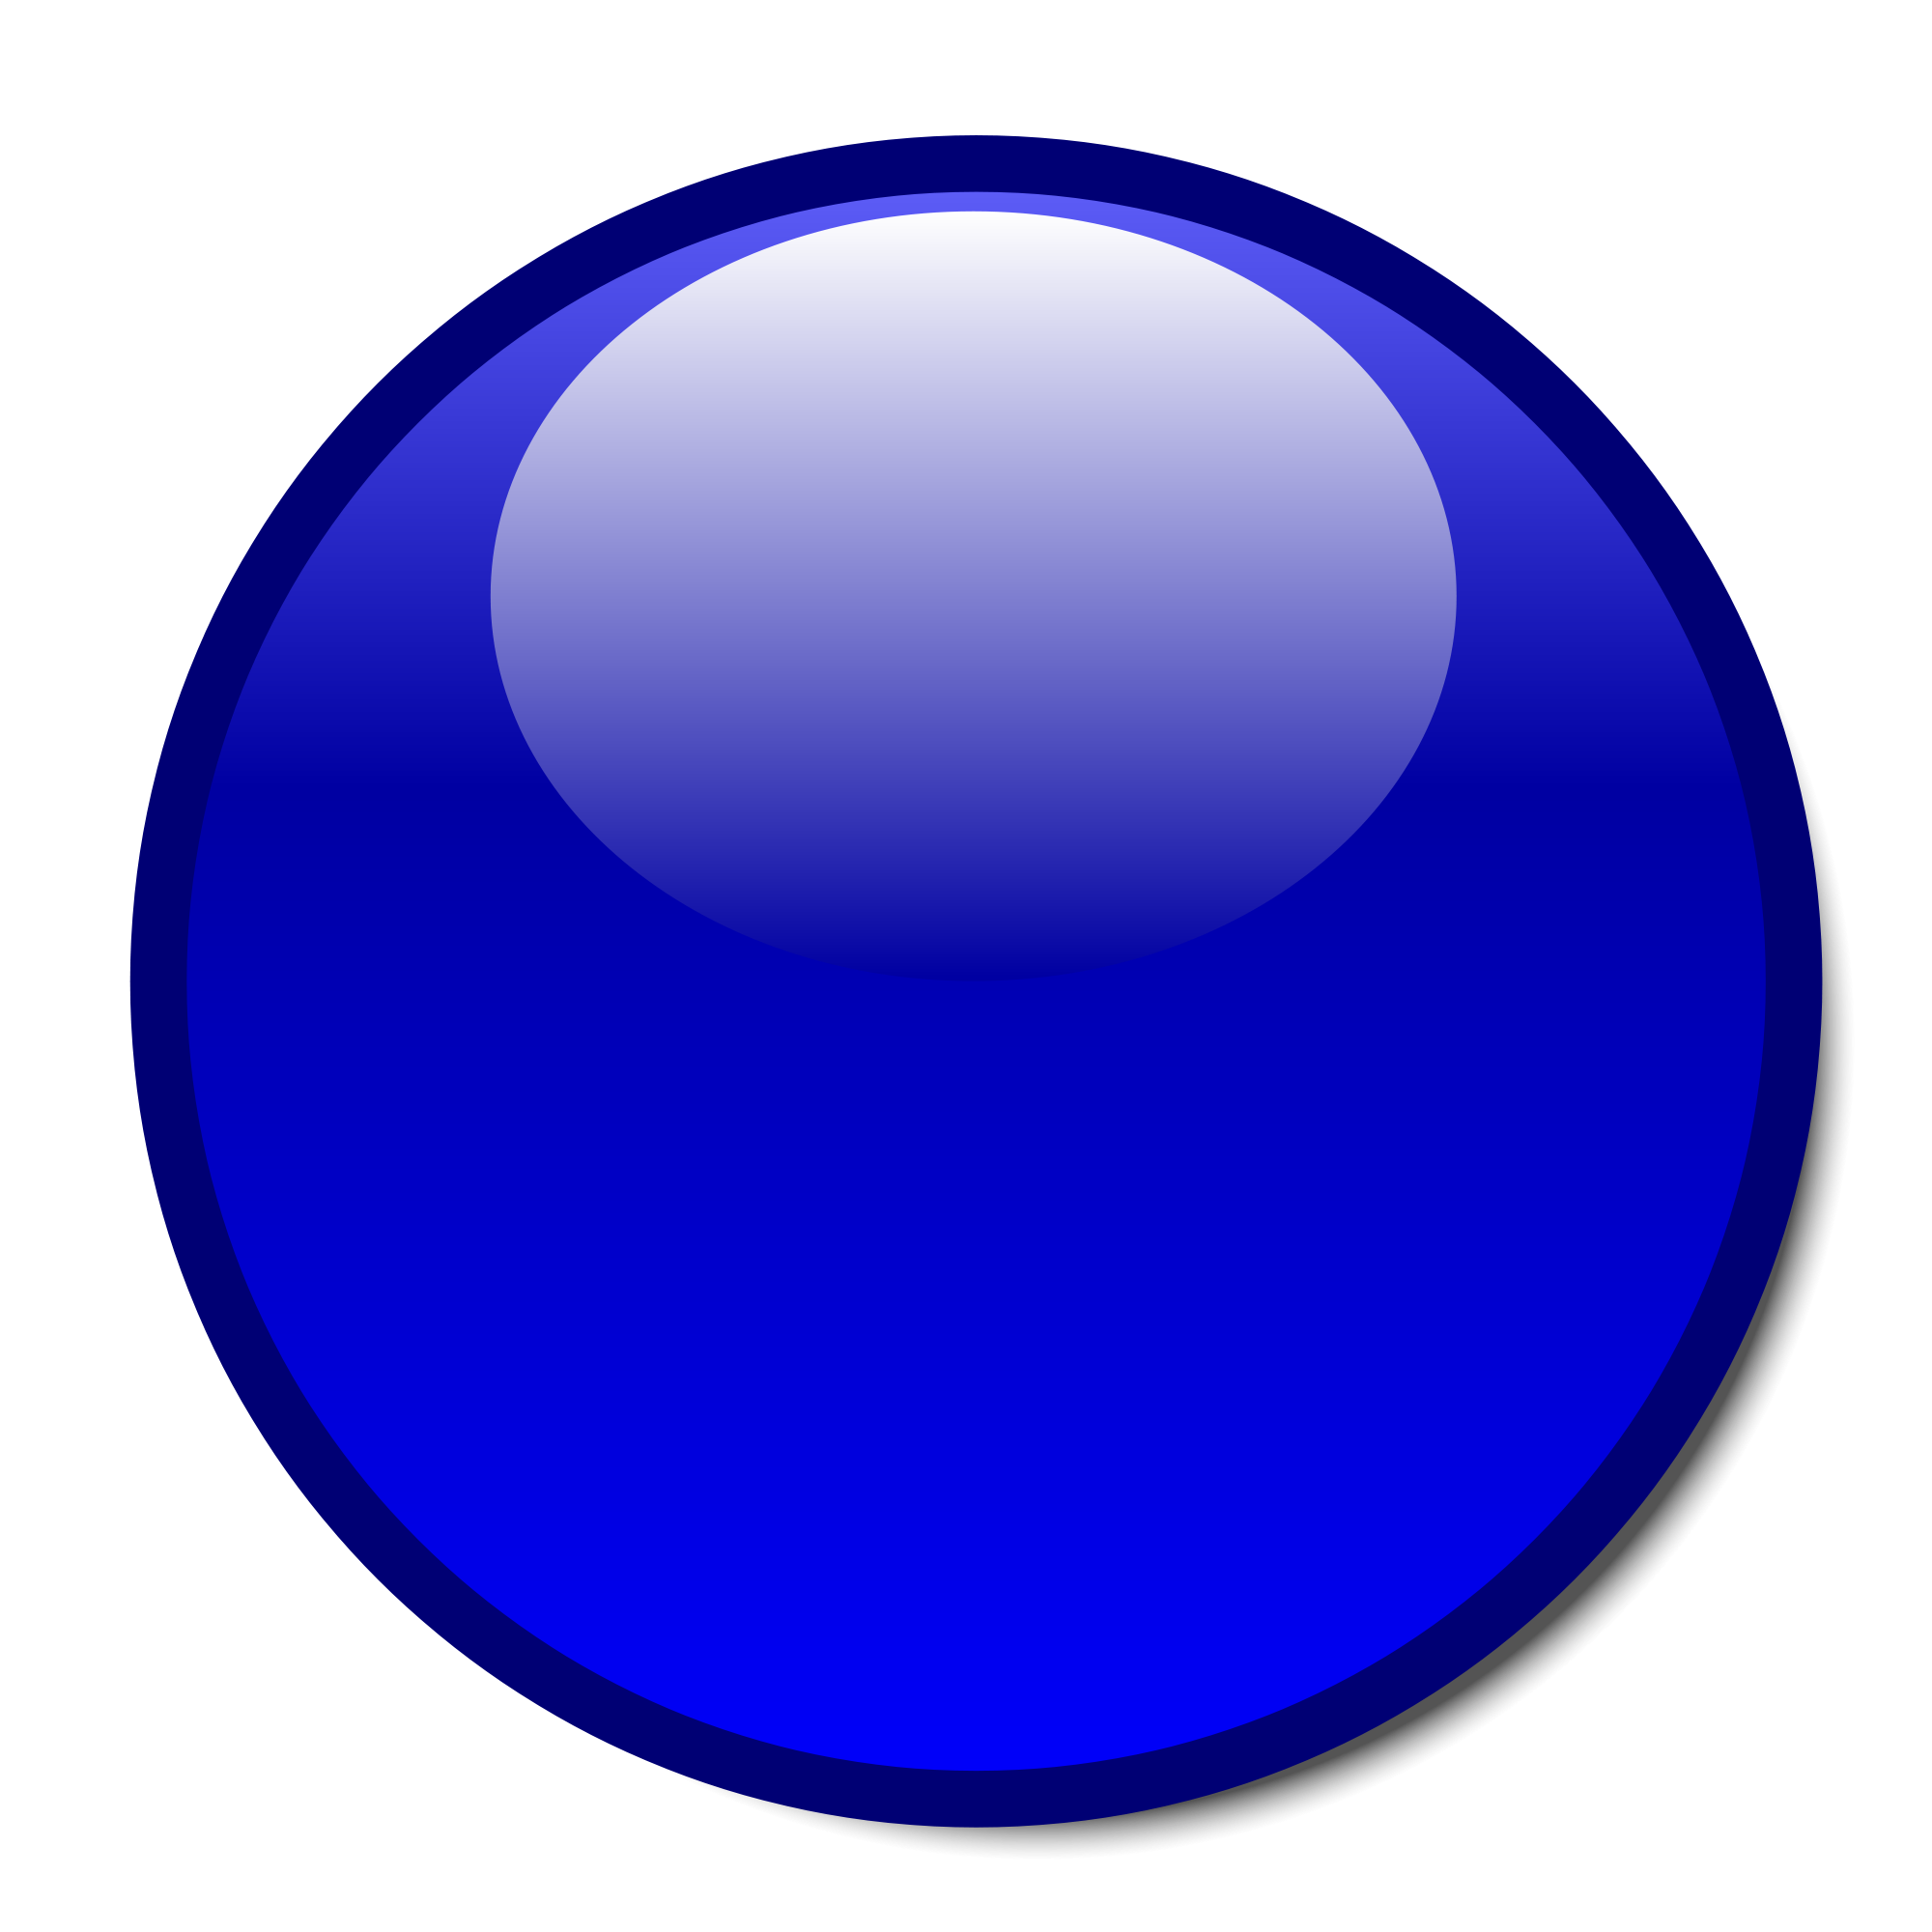 Sphere clipart svg. File blue wikimedia commons